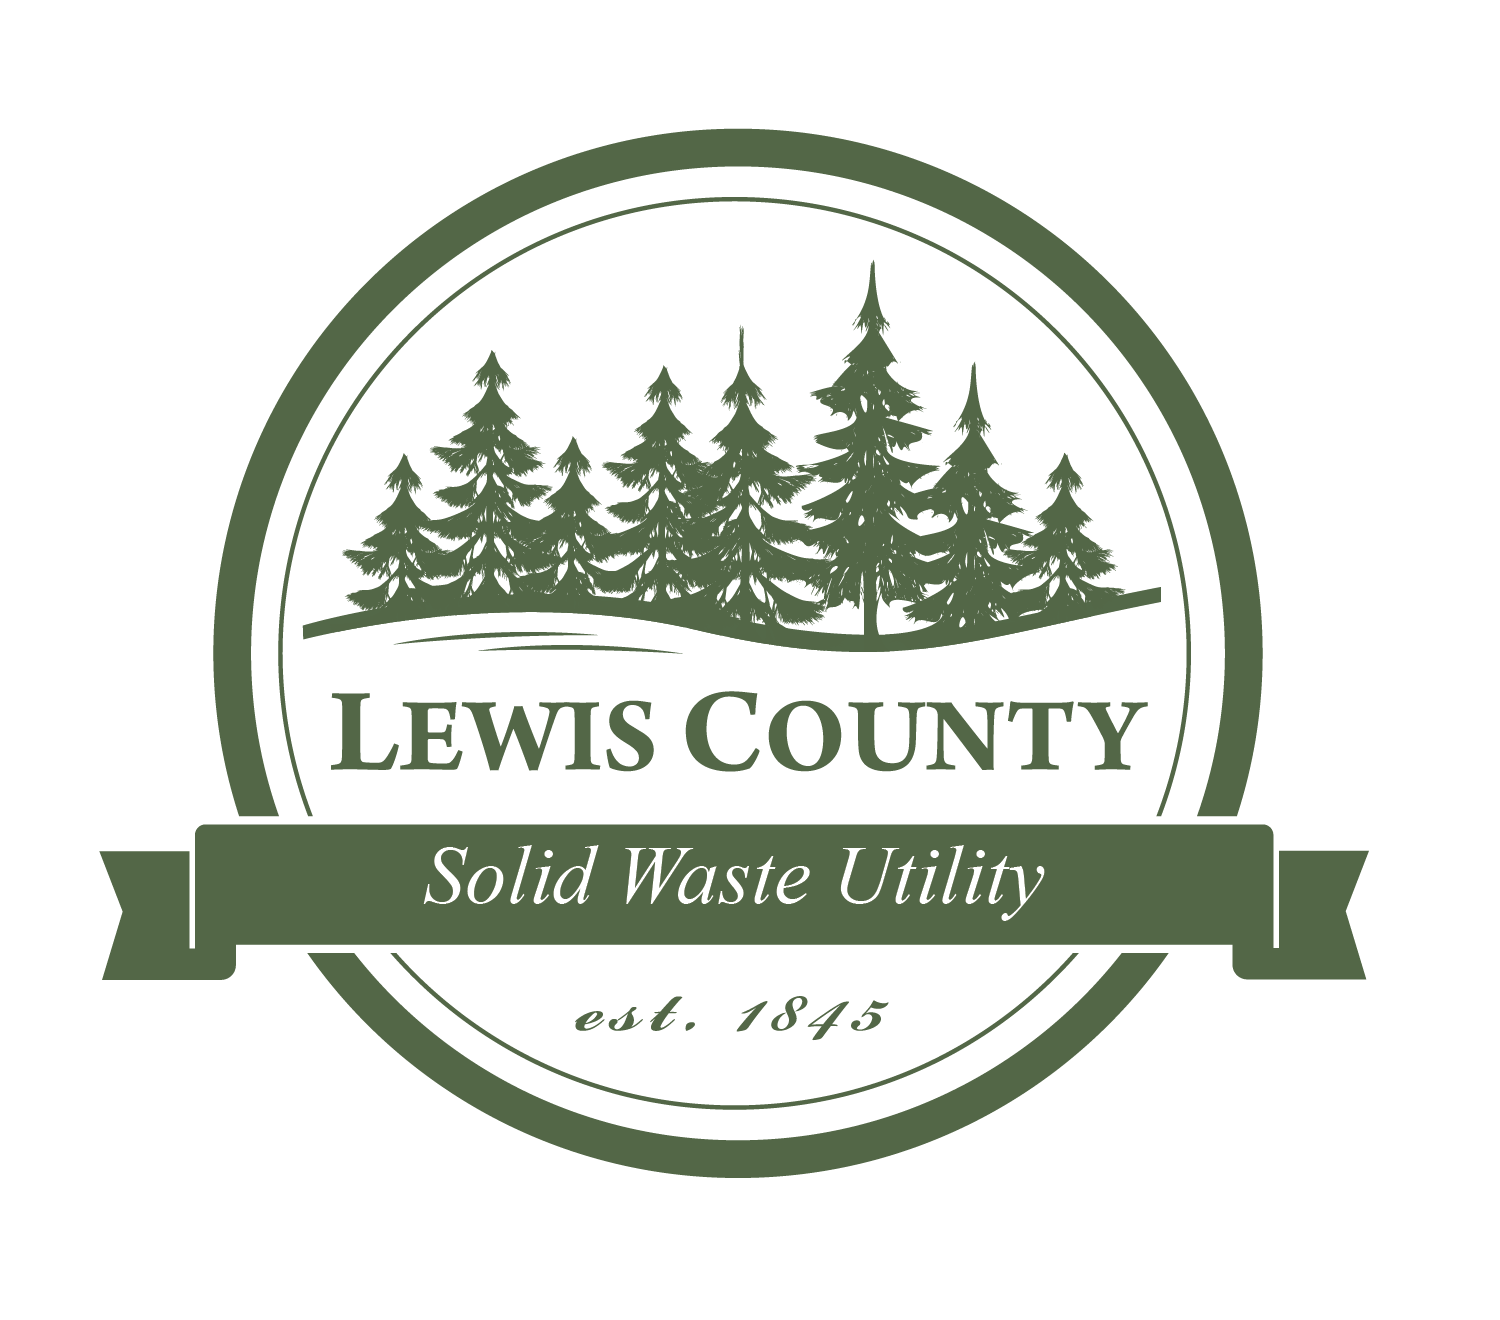 Lewis County